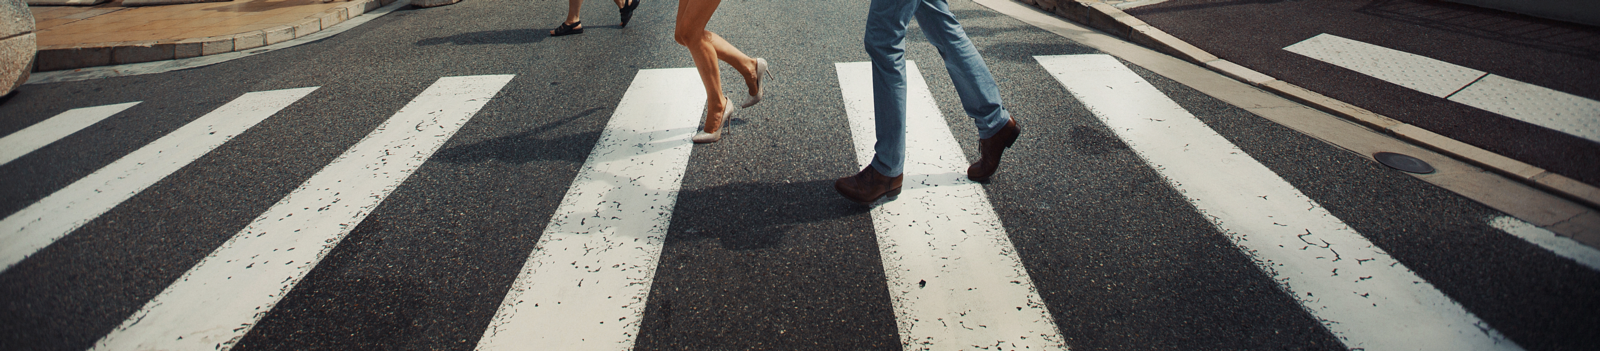 white cross walk with a man in jeans and a woman in heels crossing the road